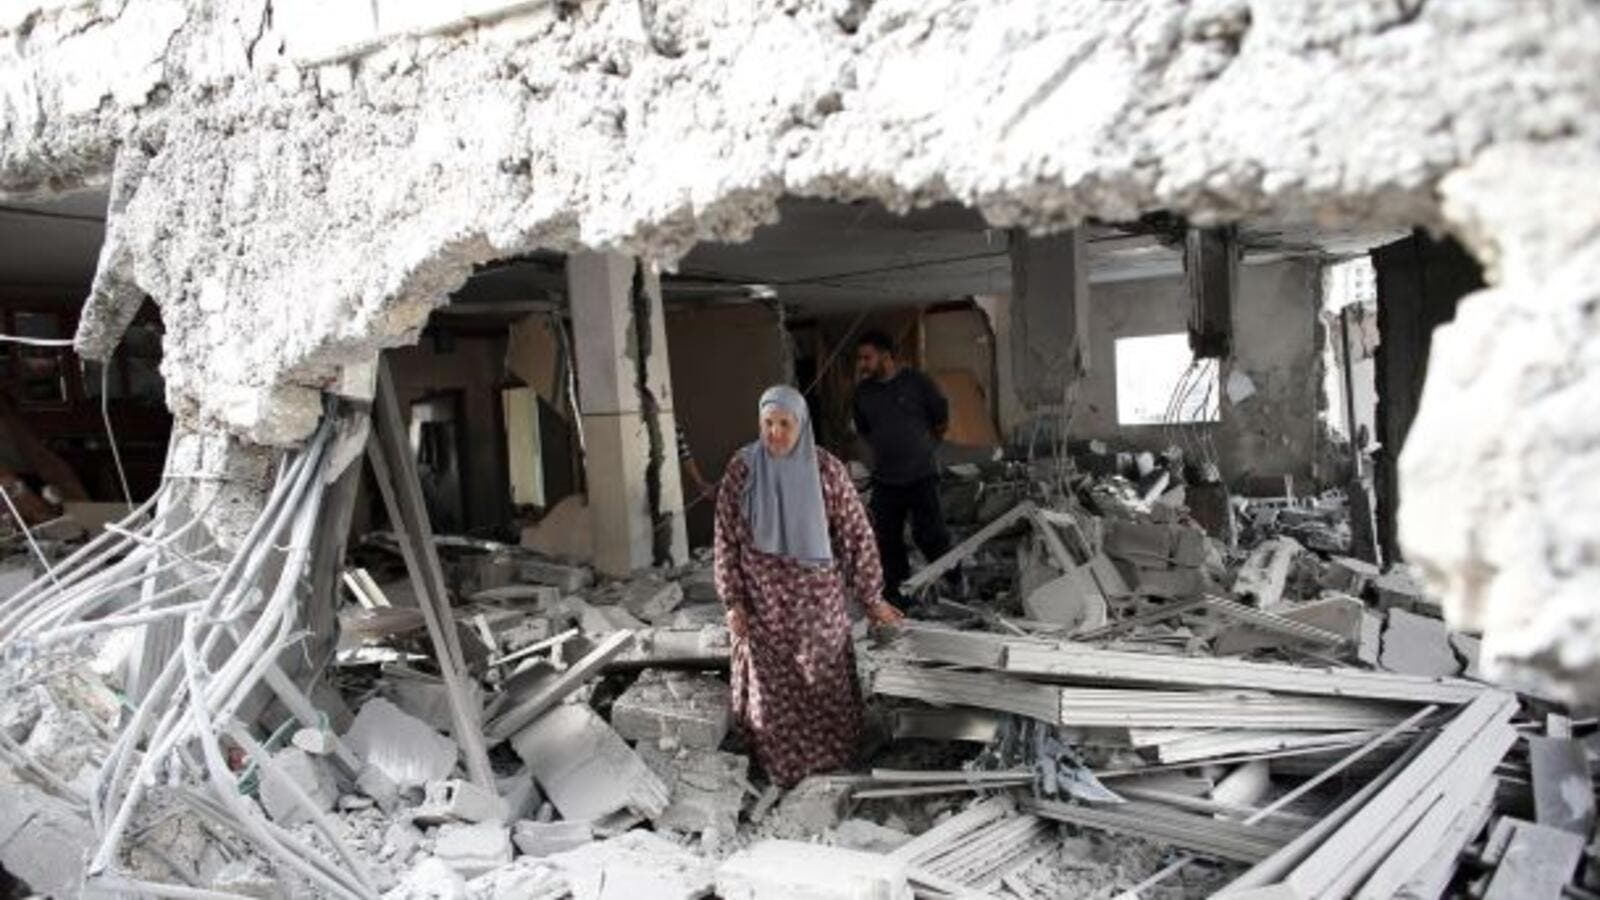 A Palestinian woman walks amid the rubble of a house after Israeli security forces demolished the homes of two convicted Palestinian terrorists in Jabal Mukkaber in East Jerusalem, October 6, 2015. (AFP/File)